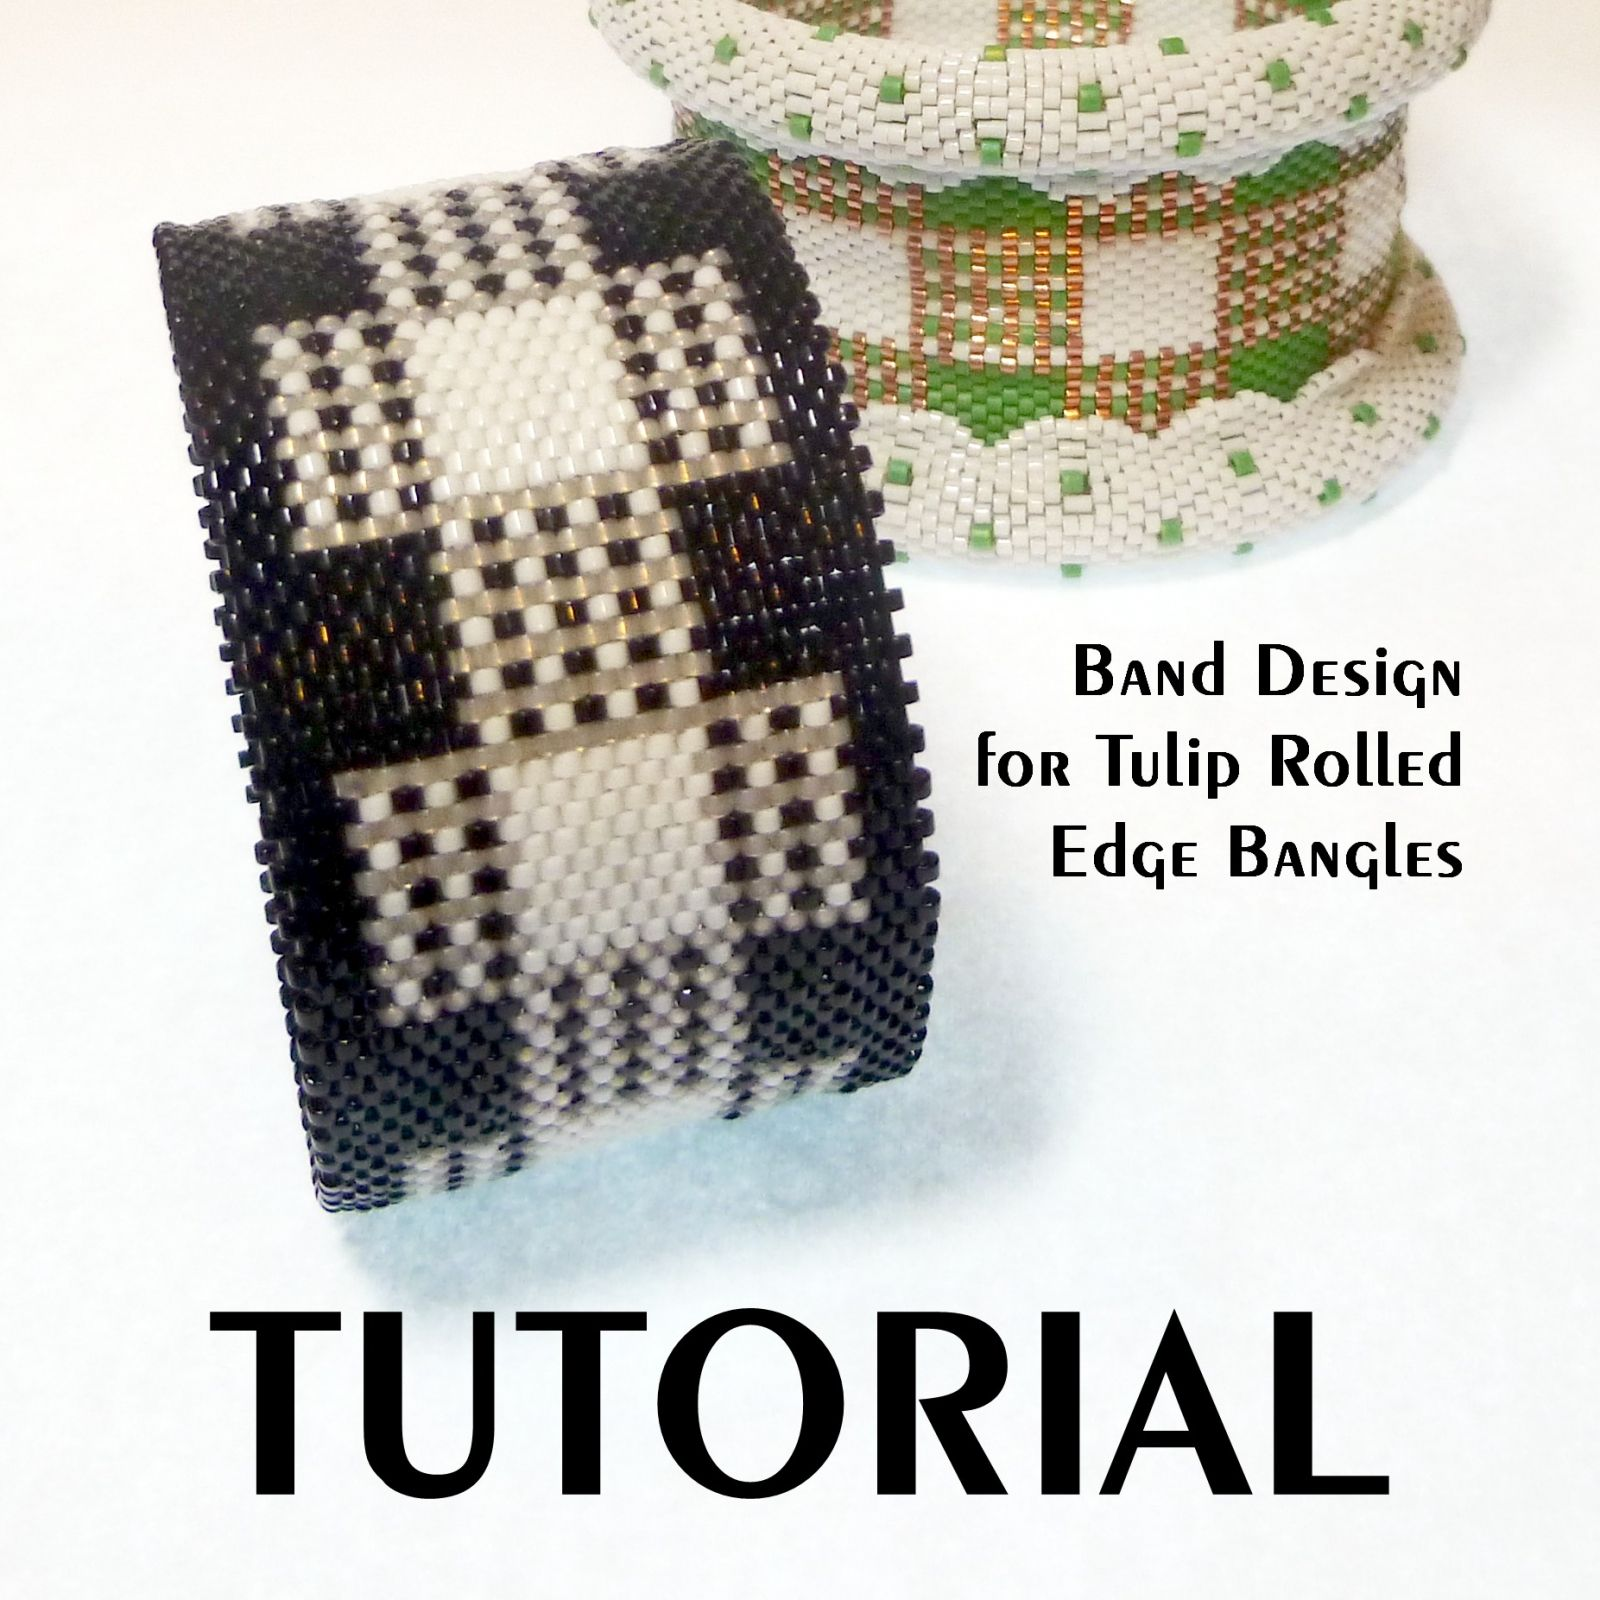 Instant download tubular peyote band for use with my tulip rolled